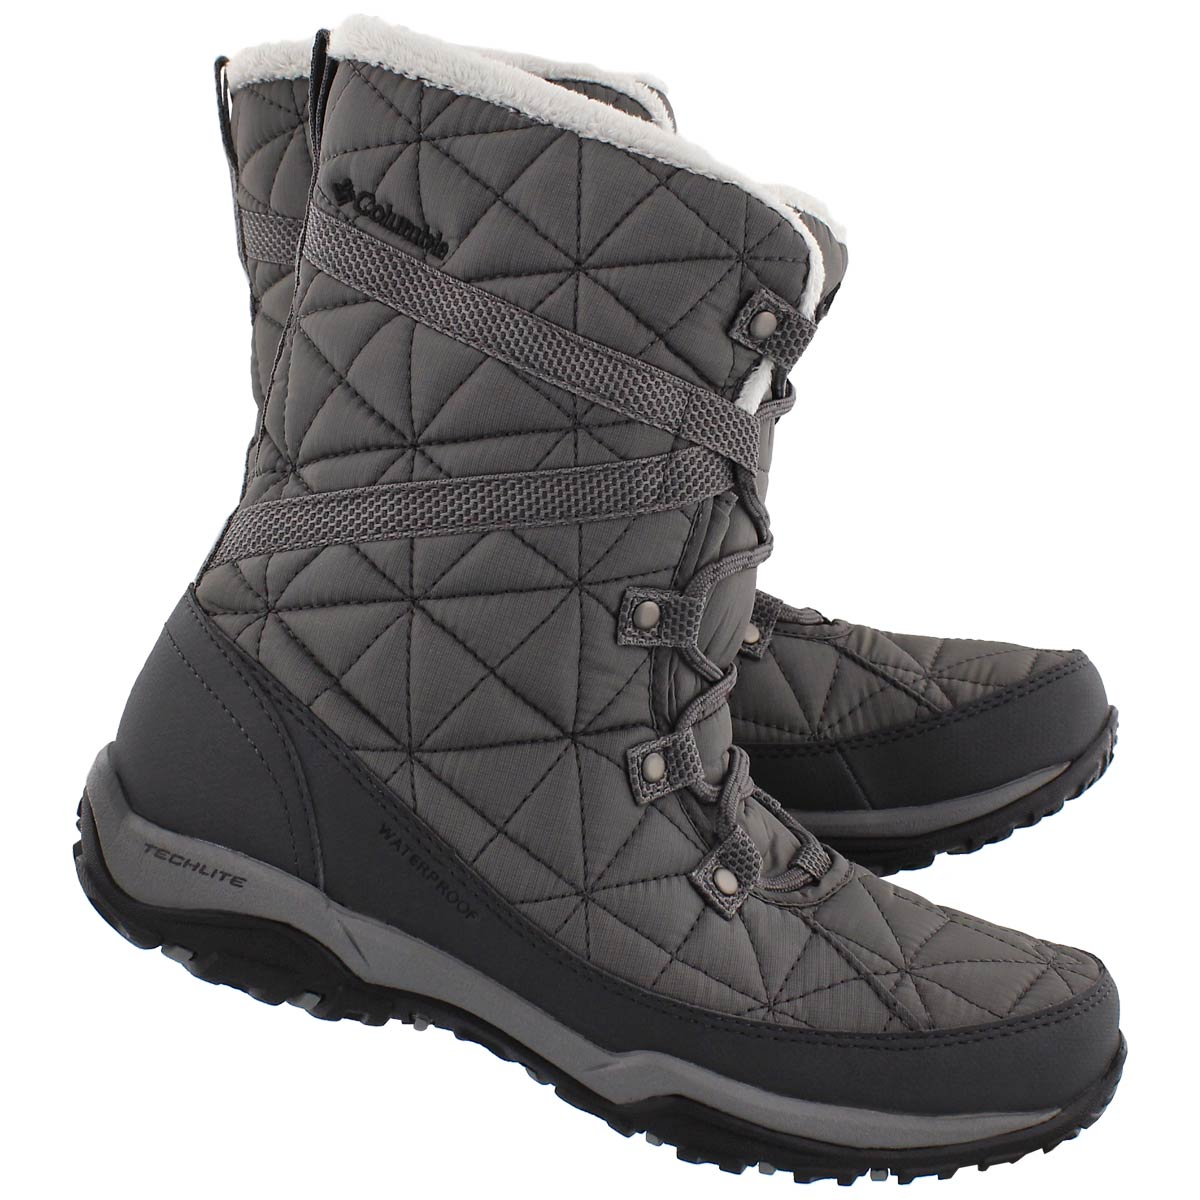 Lds Loveland Mid OmniHeat gry boot